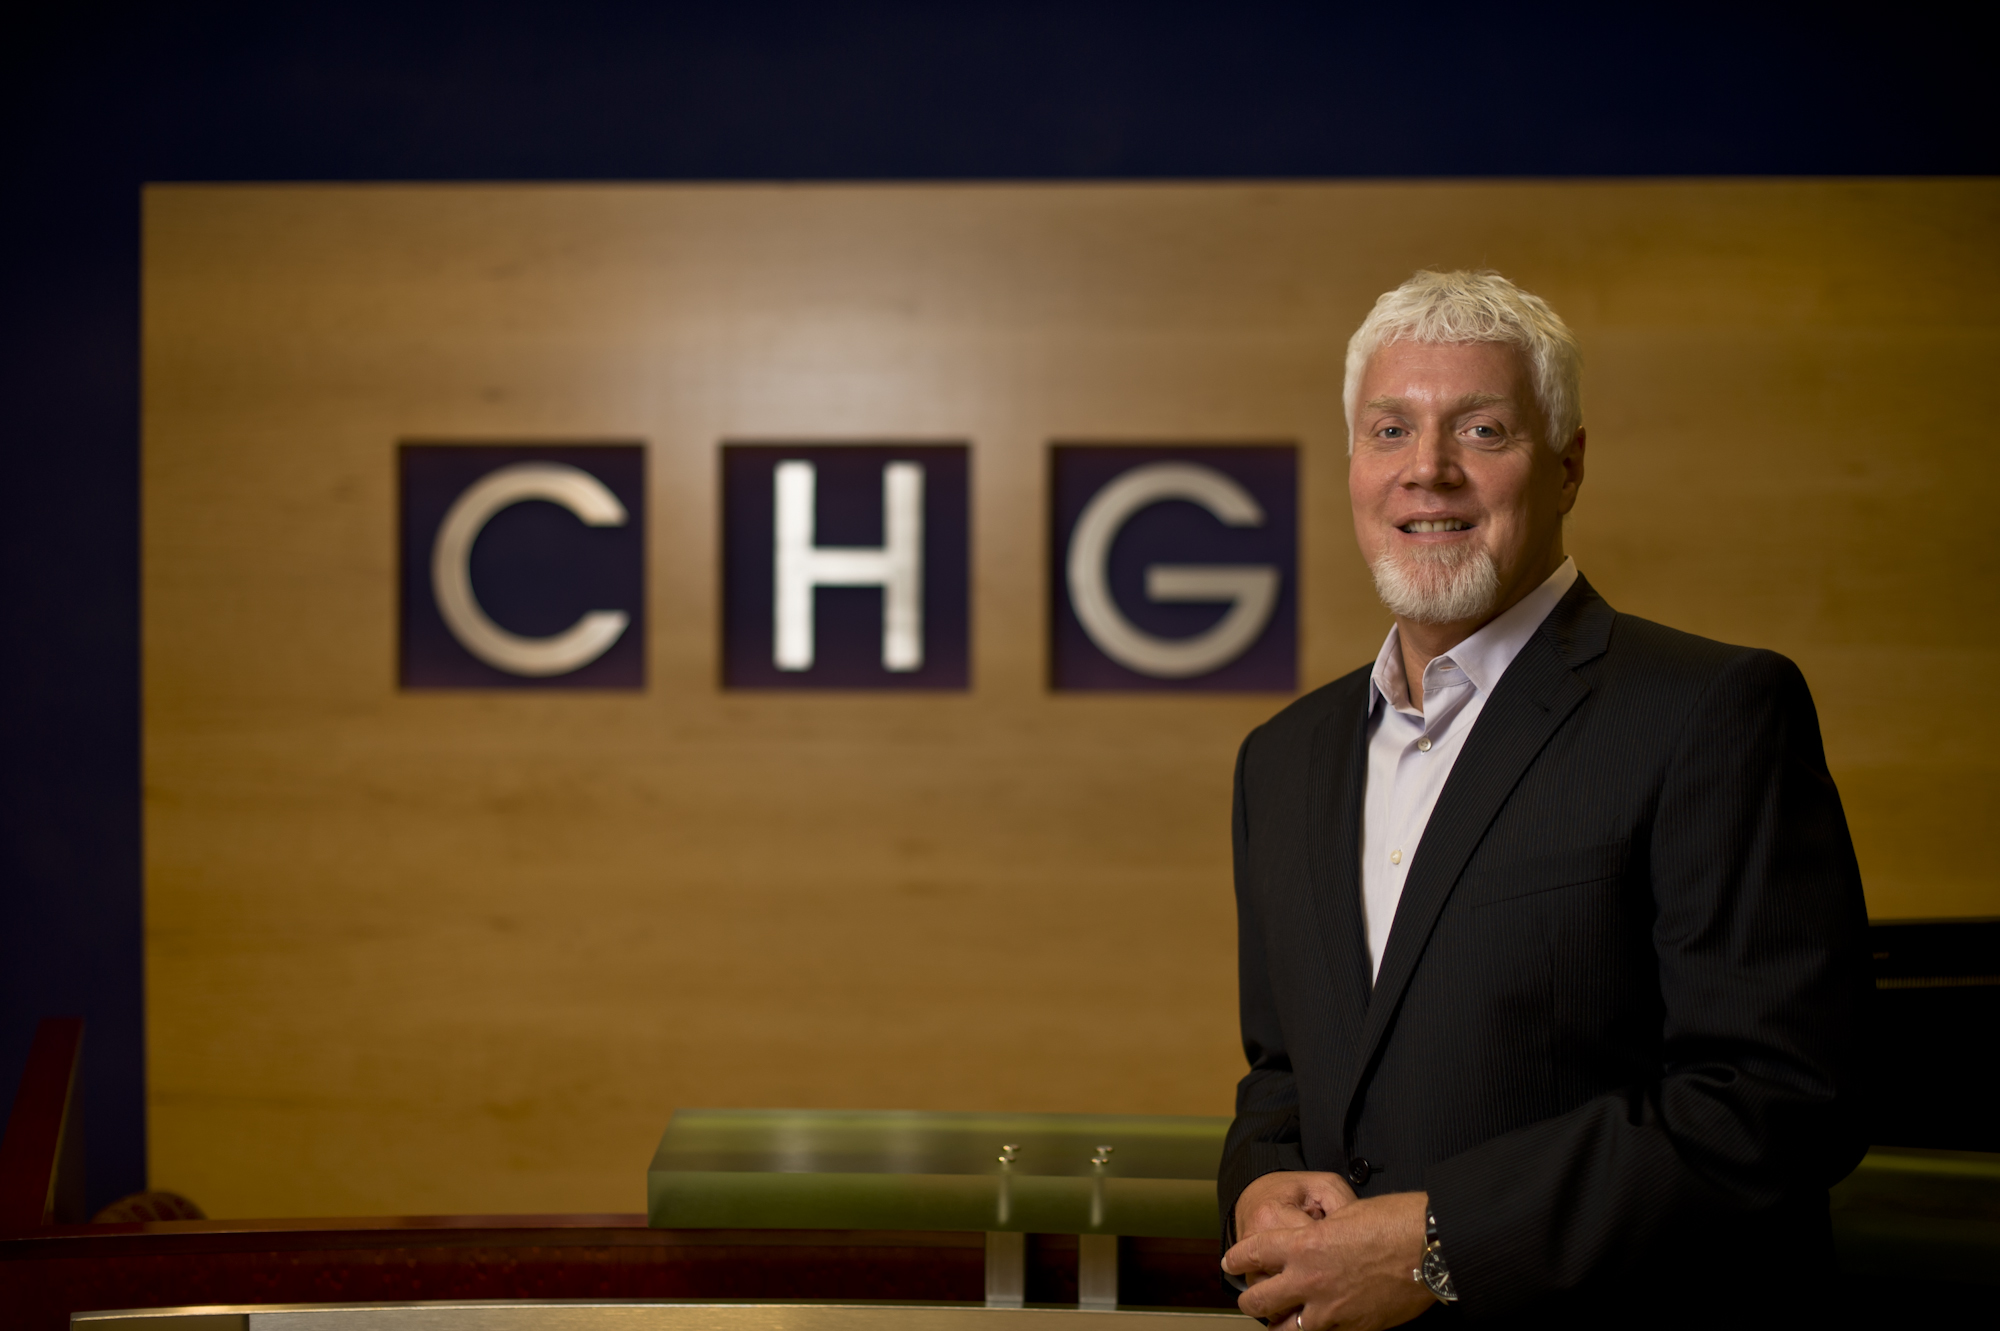 CHG healthcare services, company headquarters wallpaper